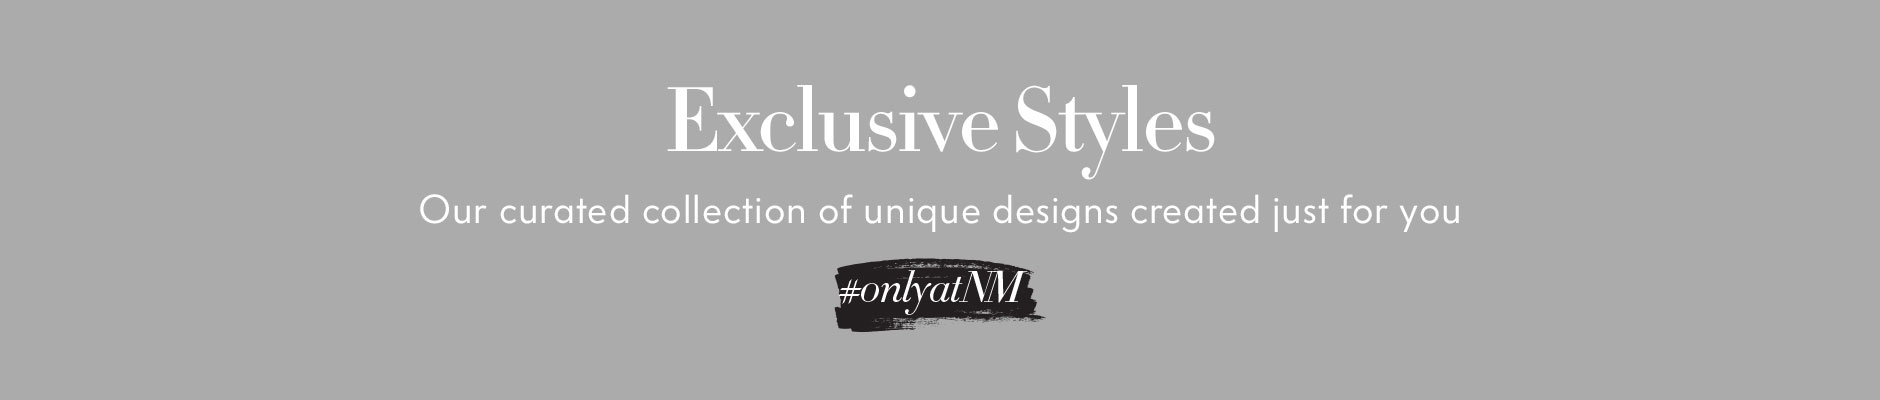 Exclusive Styles - Our curated collection of unique designs created just for you